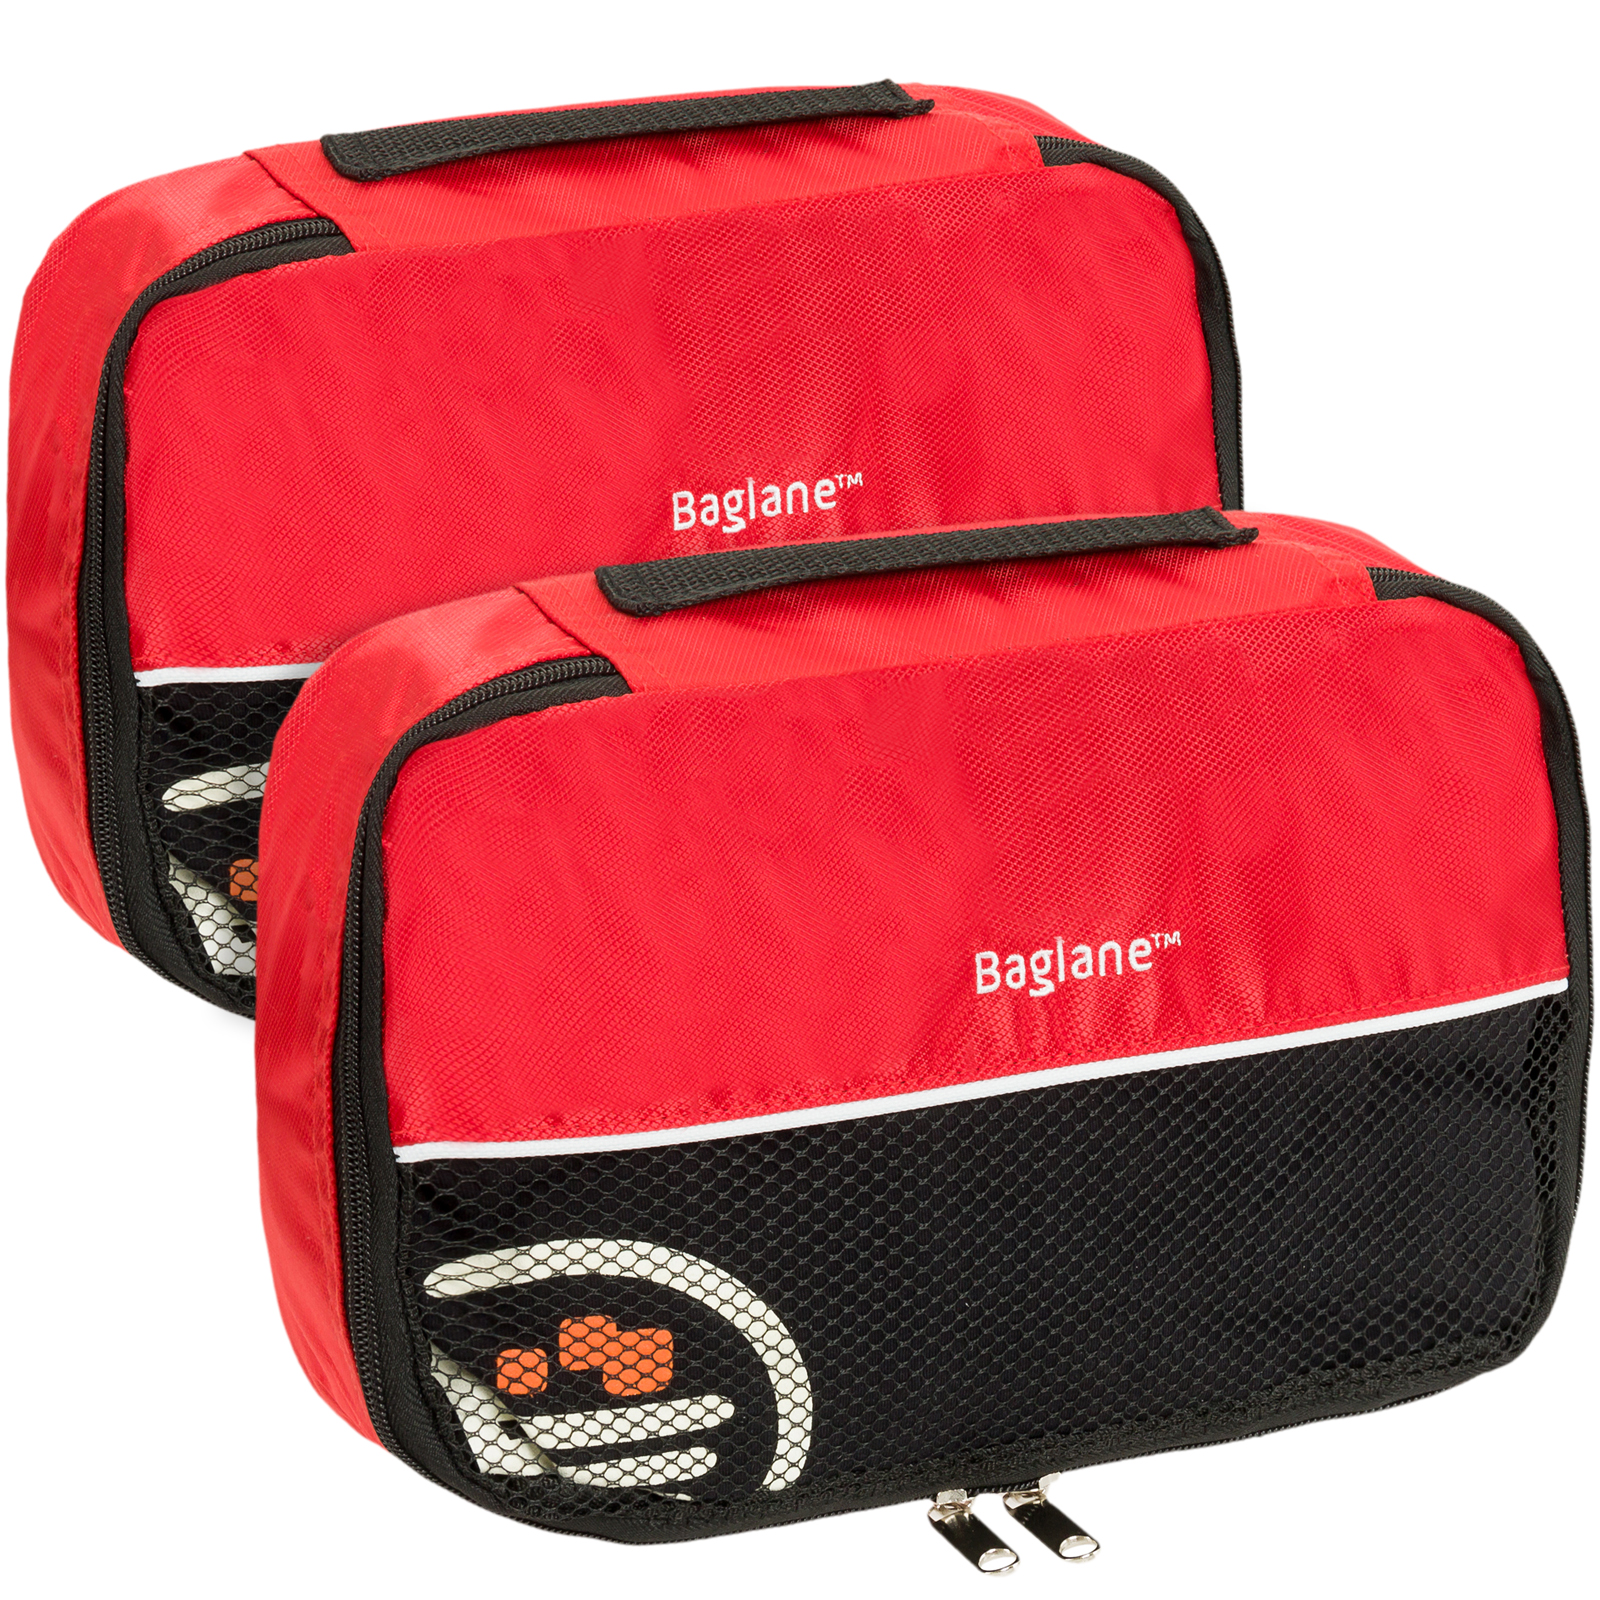 Baglane Packing Cube Bag - TechLife Nylon Travel Luggage - 2pc Set (Red, Small)